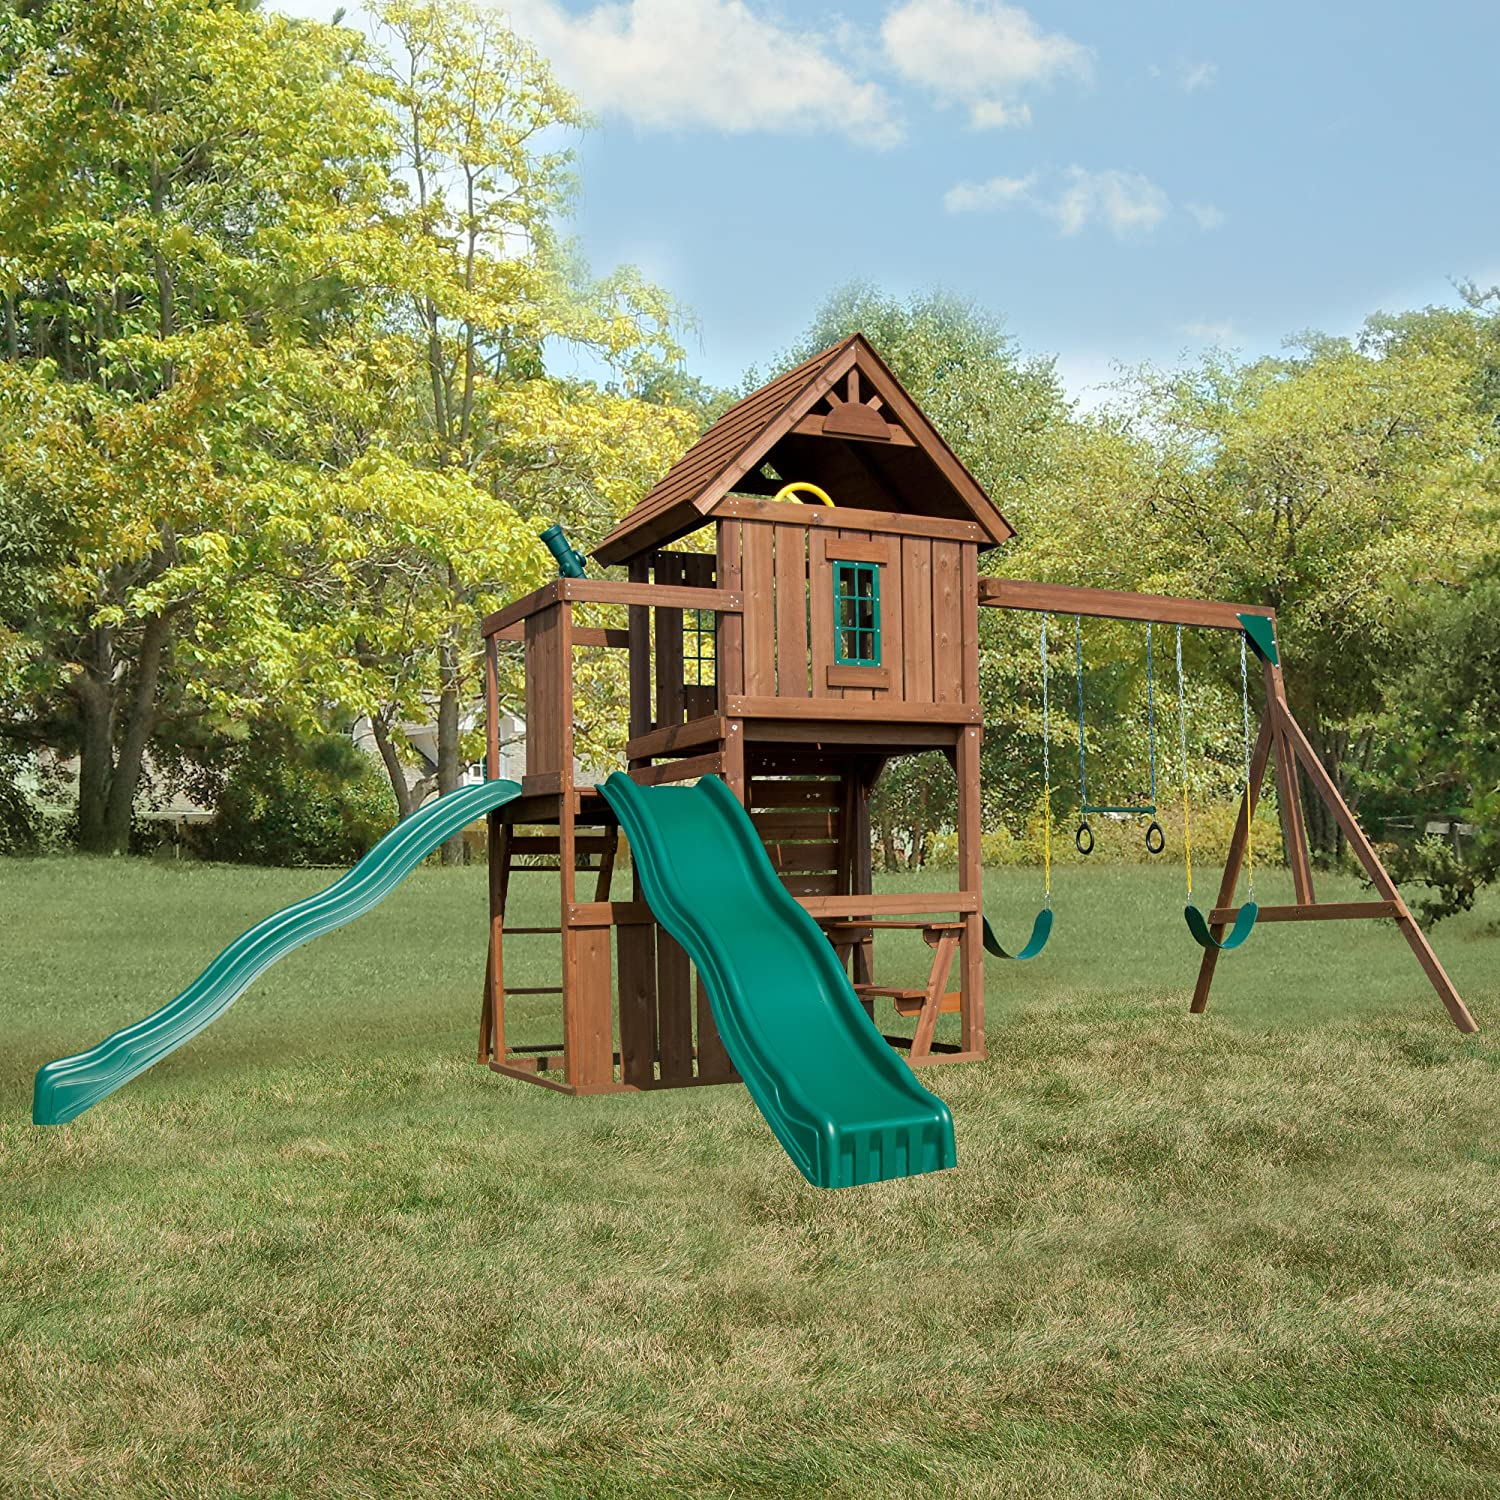 amazon com swing n slide mont eagle play set with two swings two